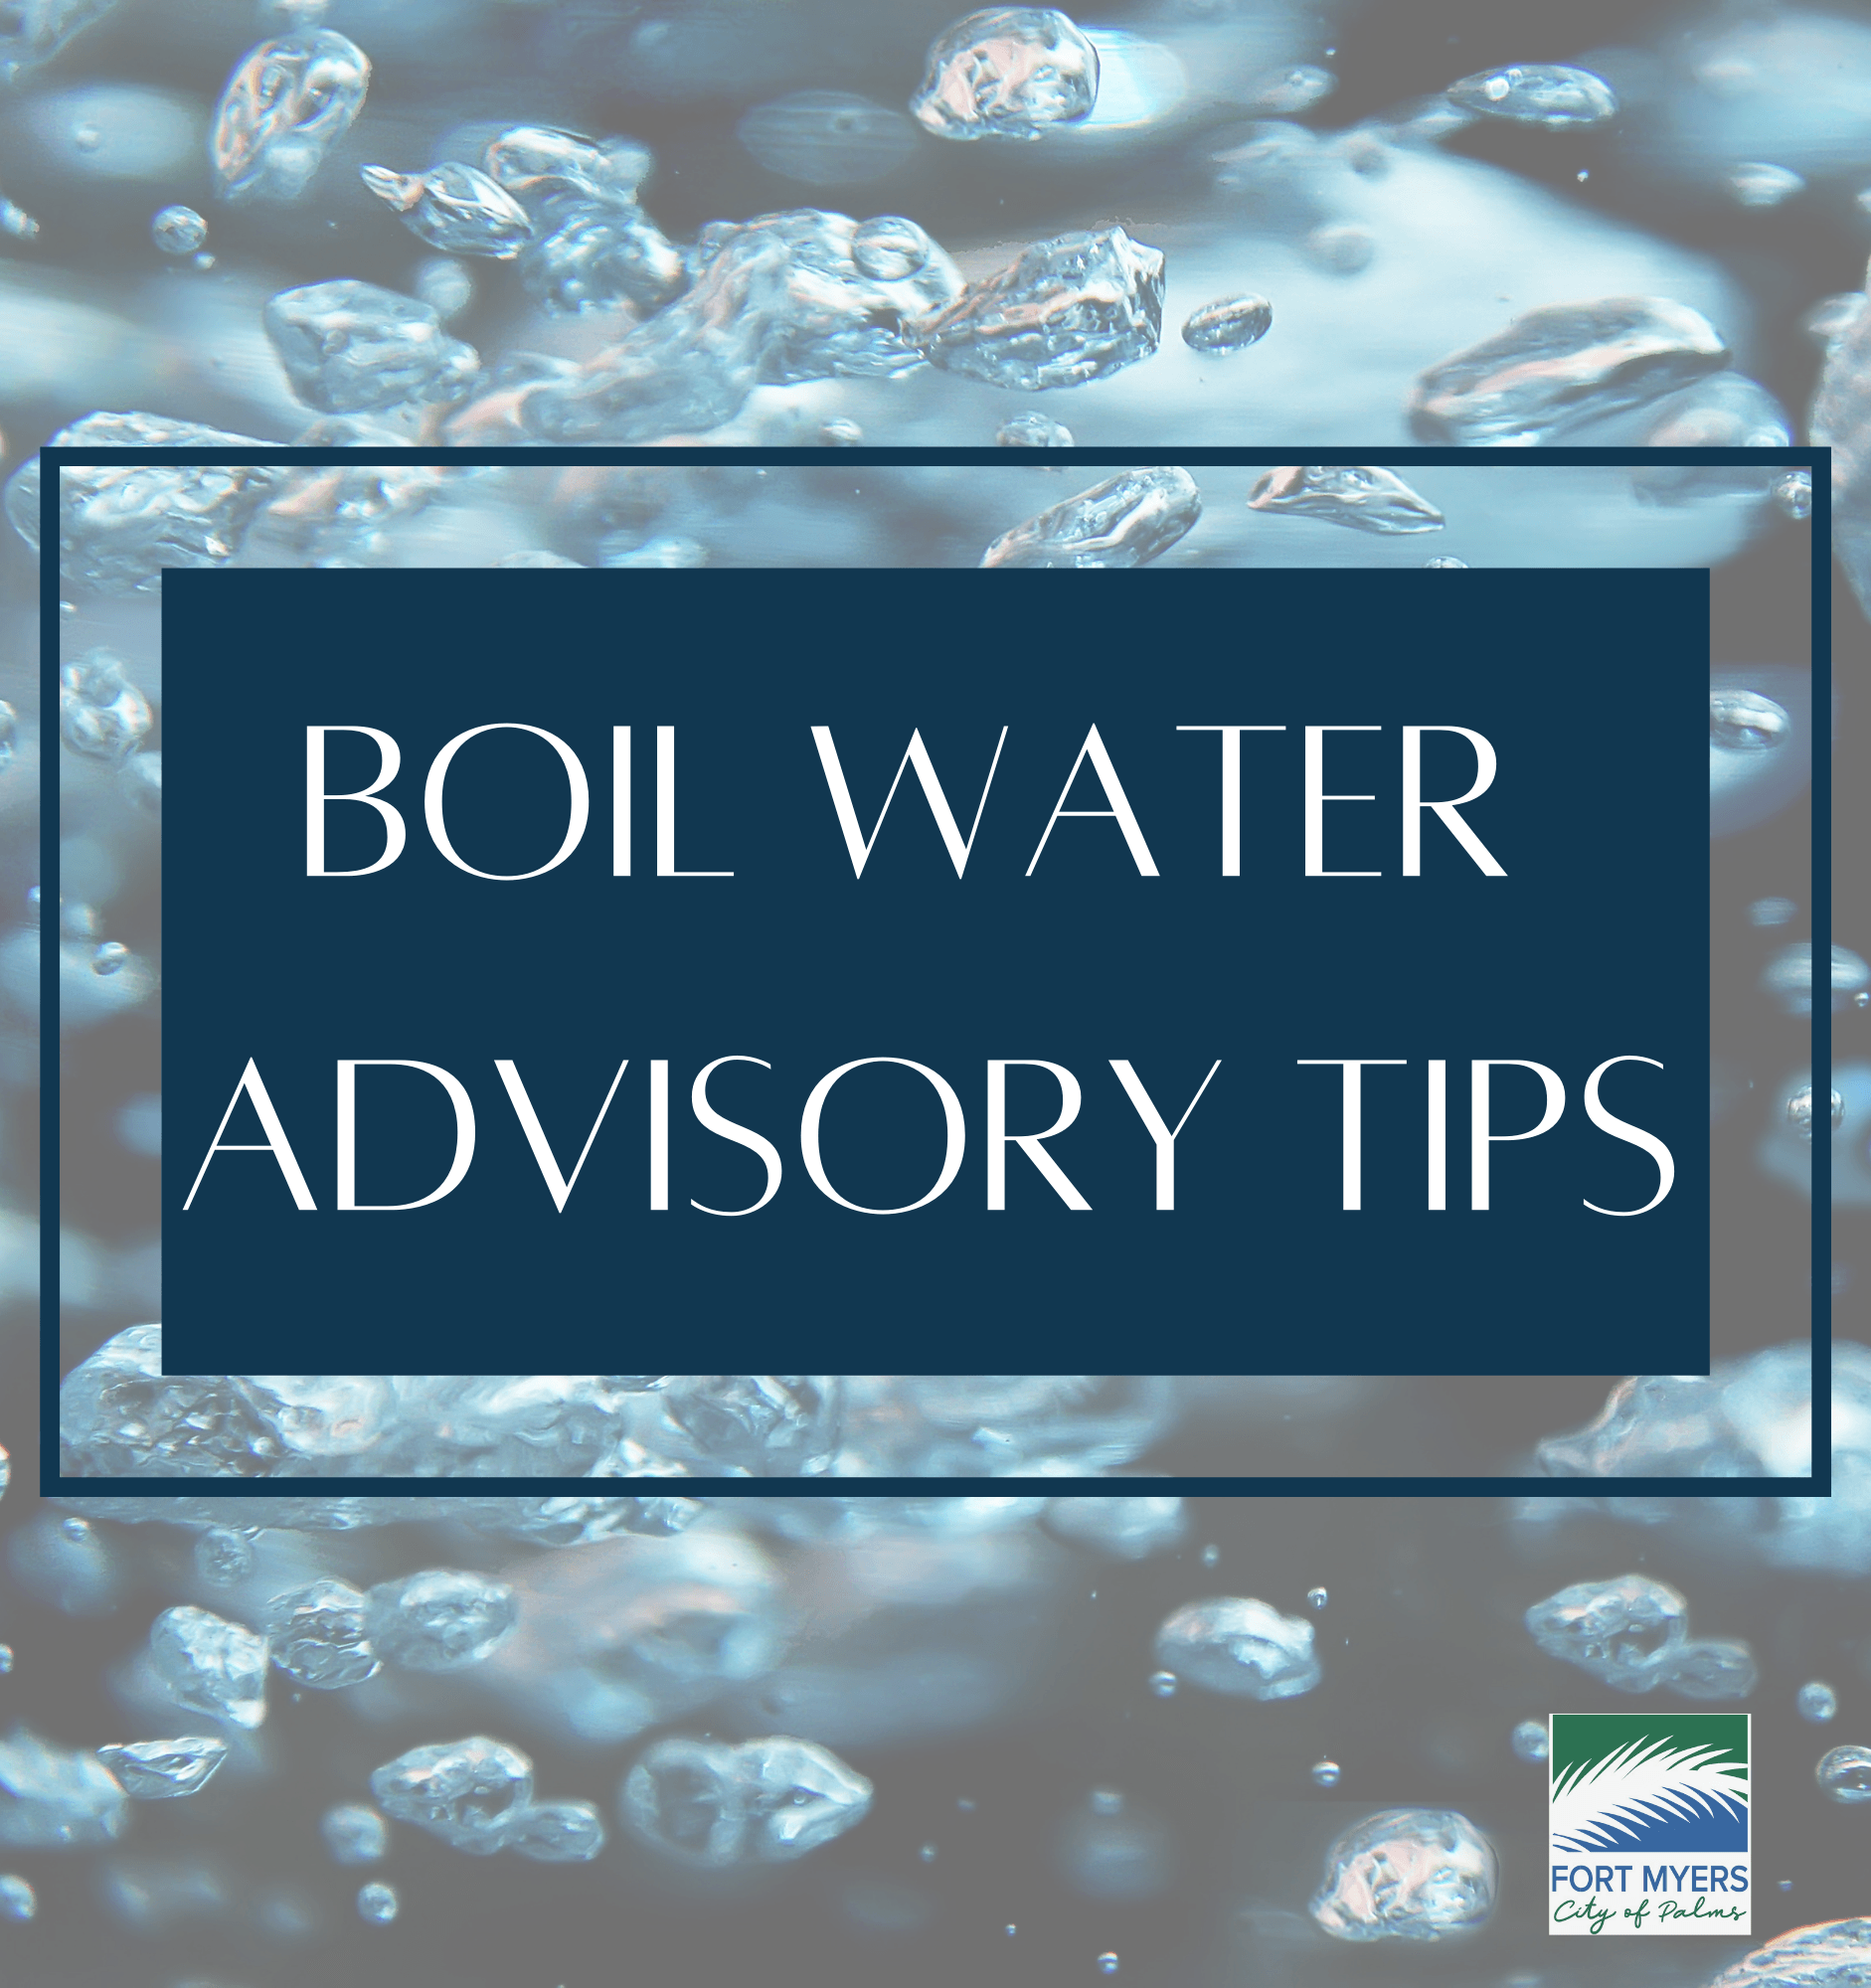 Tips about what to do when a boil water advisory is issued.